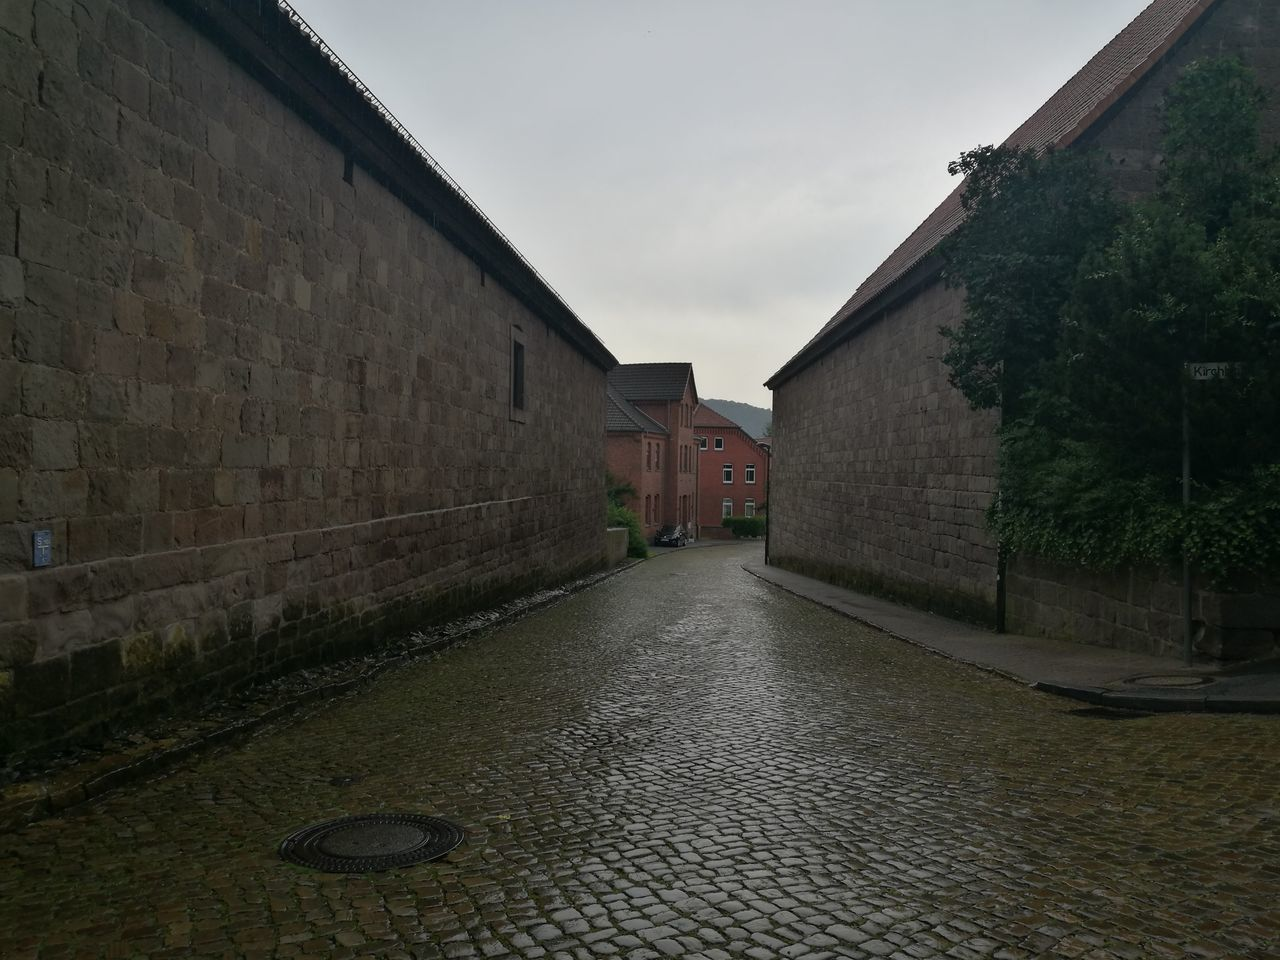 architecture, building exterior, built structure, cobblestone, outdoors, no people, day, sky, city